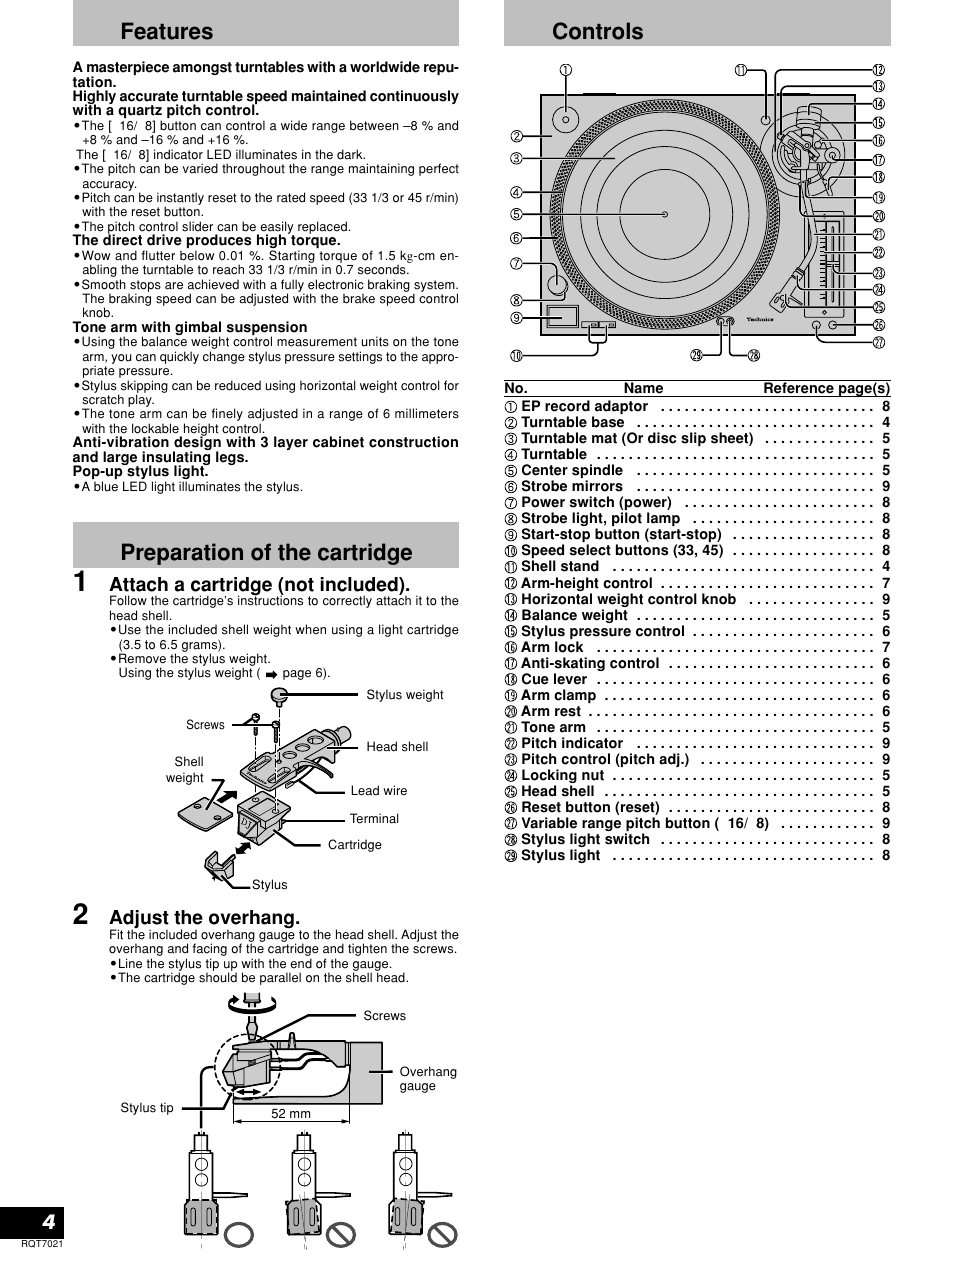 Features, Preparation of the cartridge, Controls | Technics